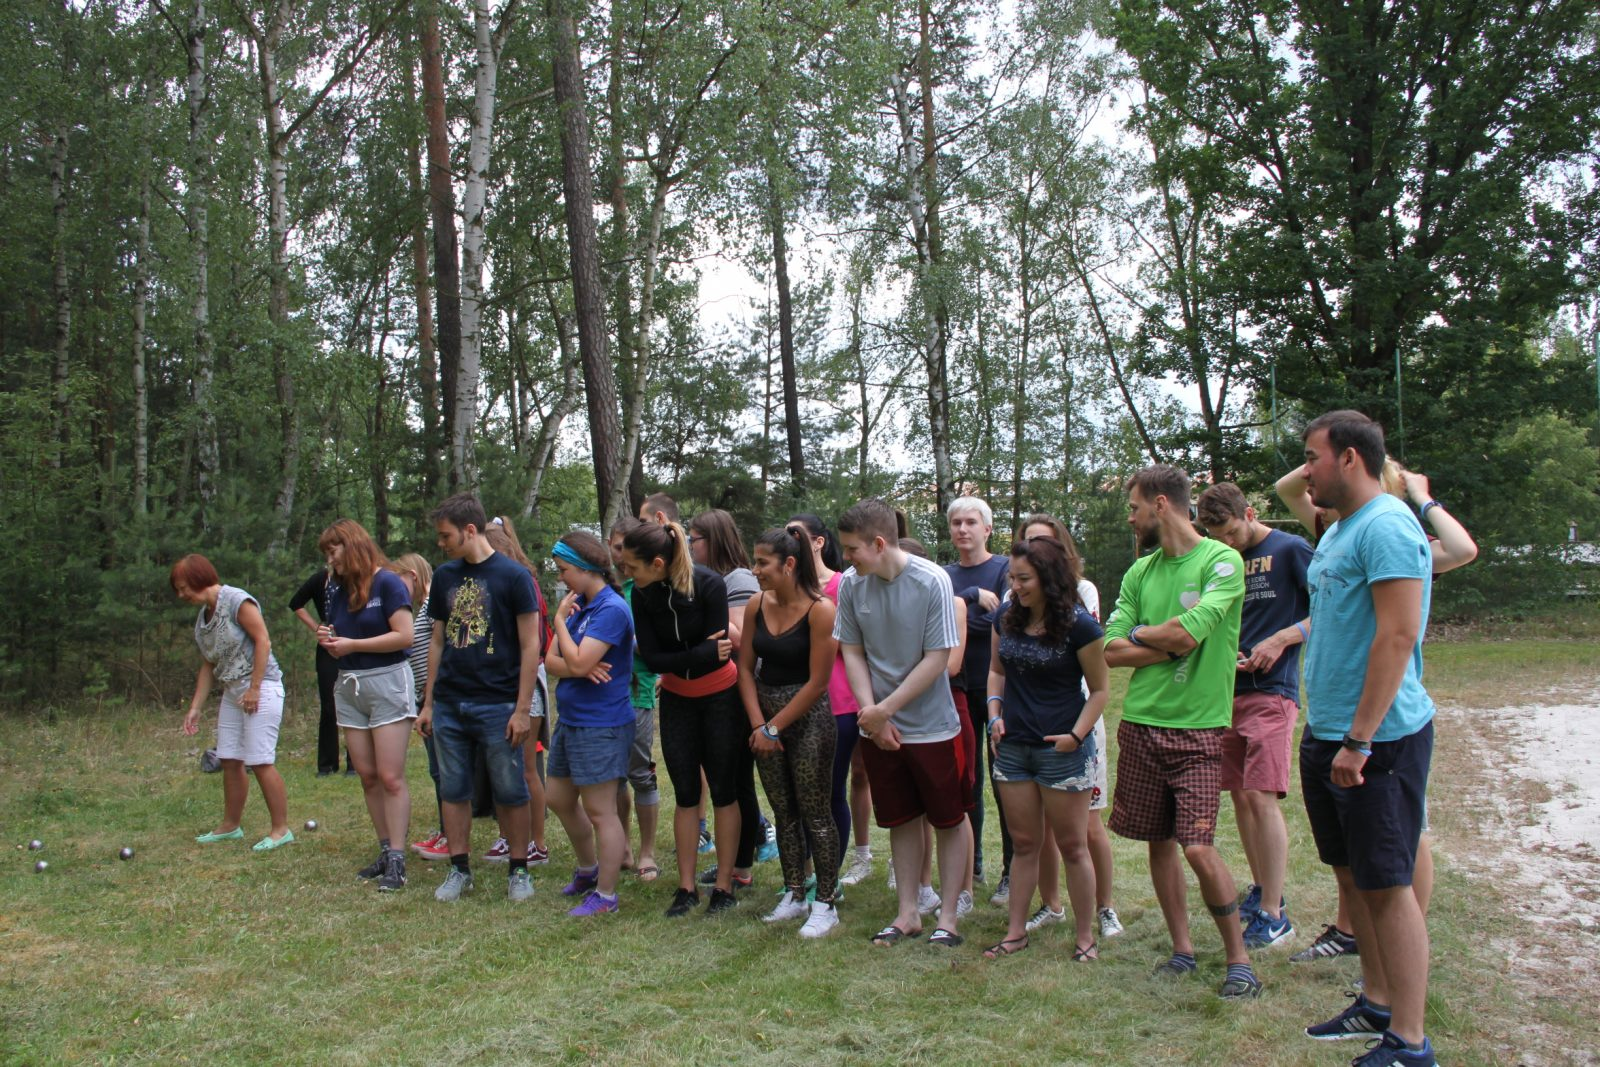 Second day at IDF Europe Youth Leadership Camp (YLC)